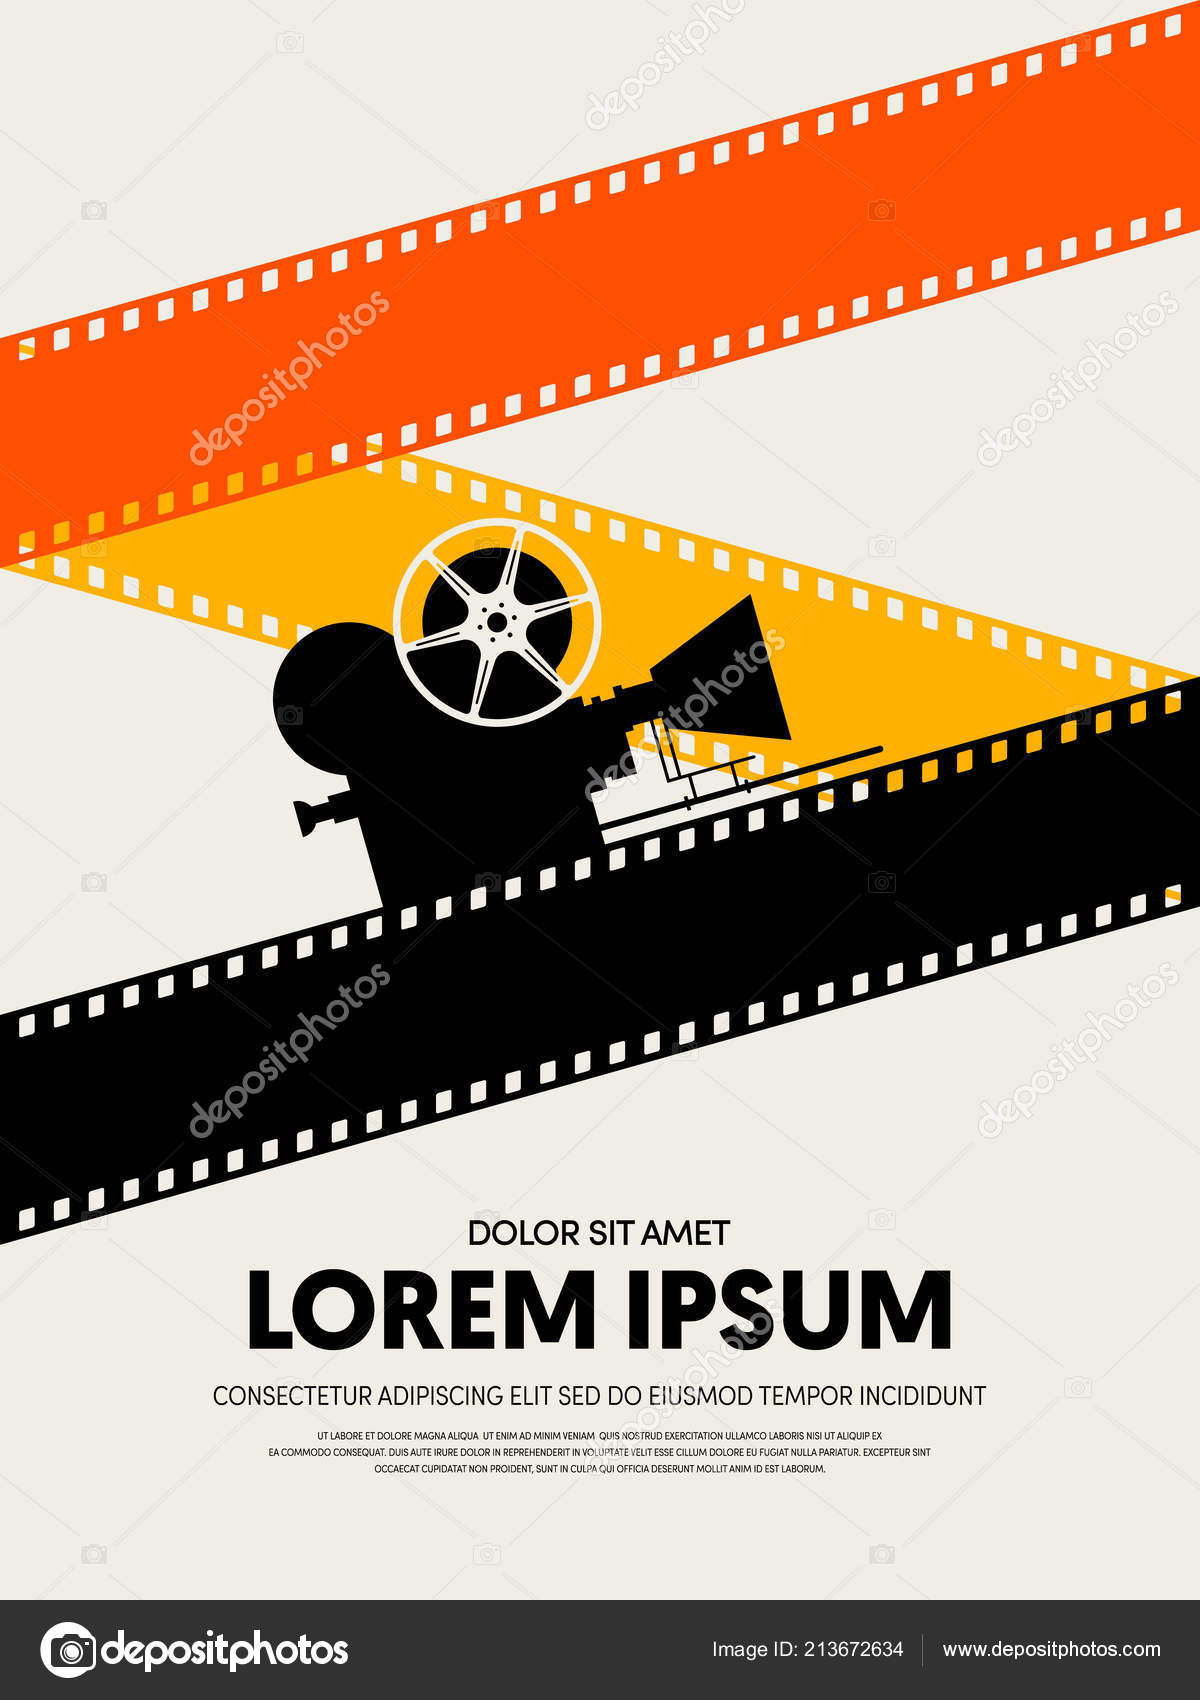 movie and film festival poster template design modern retro vintage style can be used for background backdrop banner brochure leaflet publication - Film Festival Brochure Template